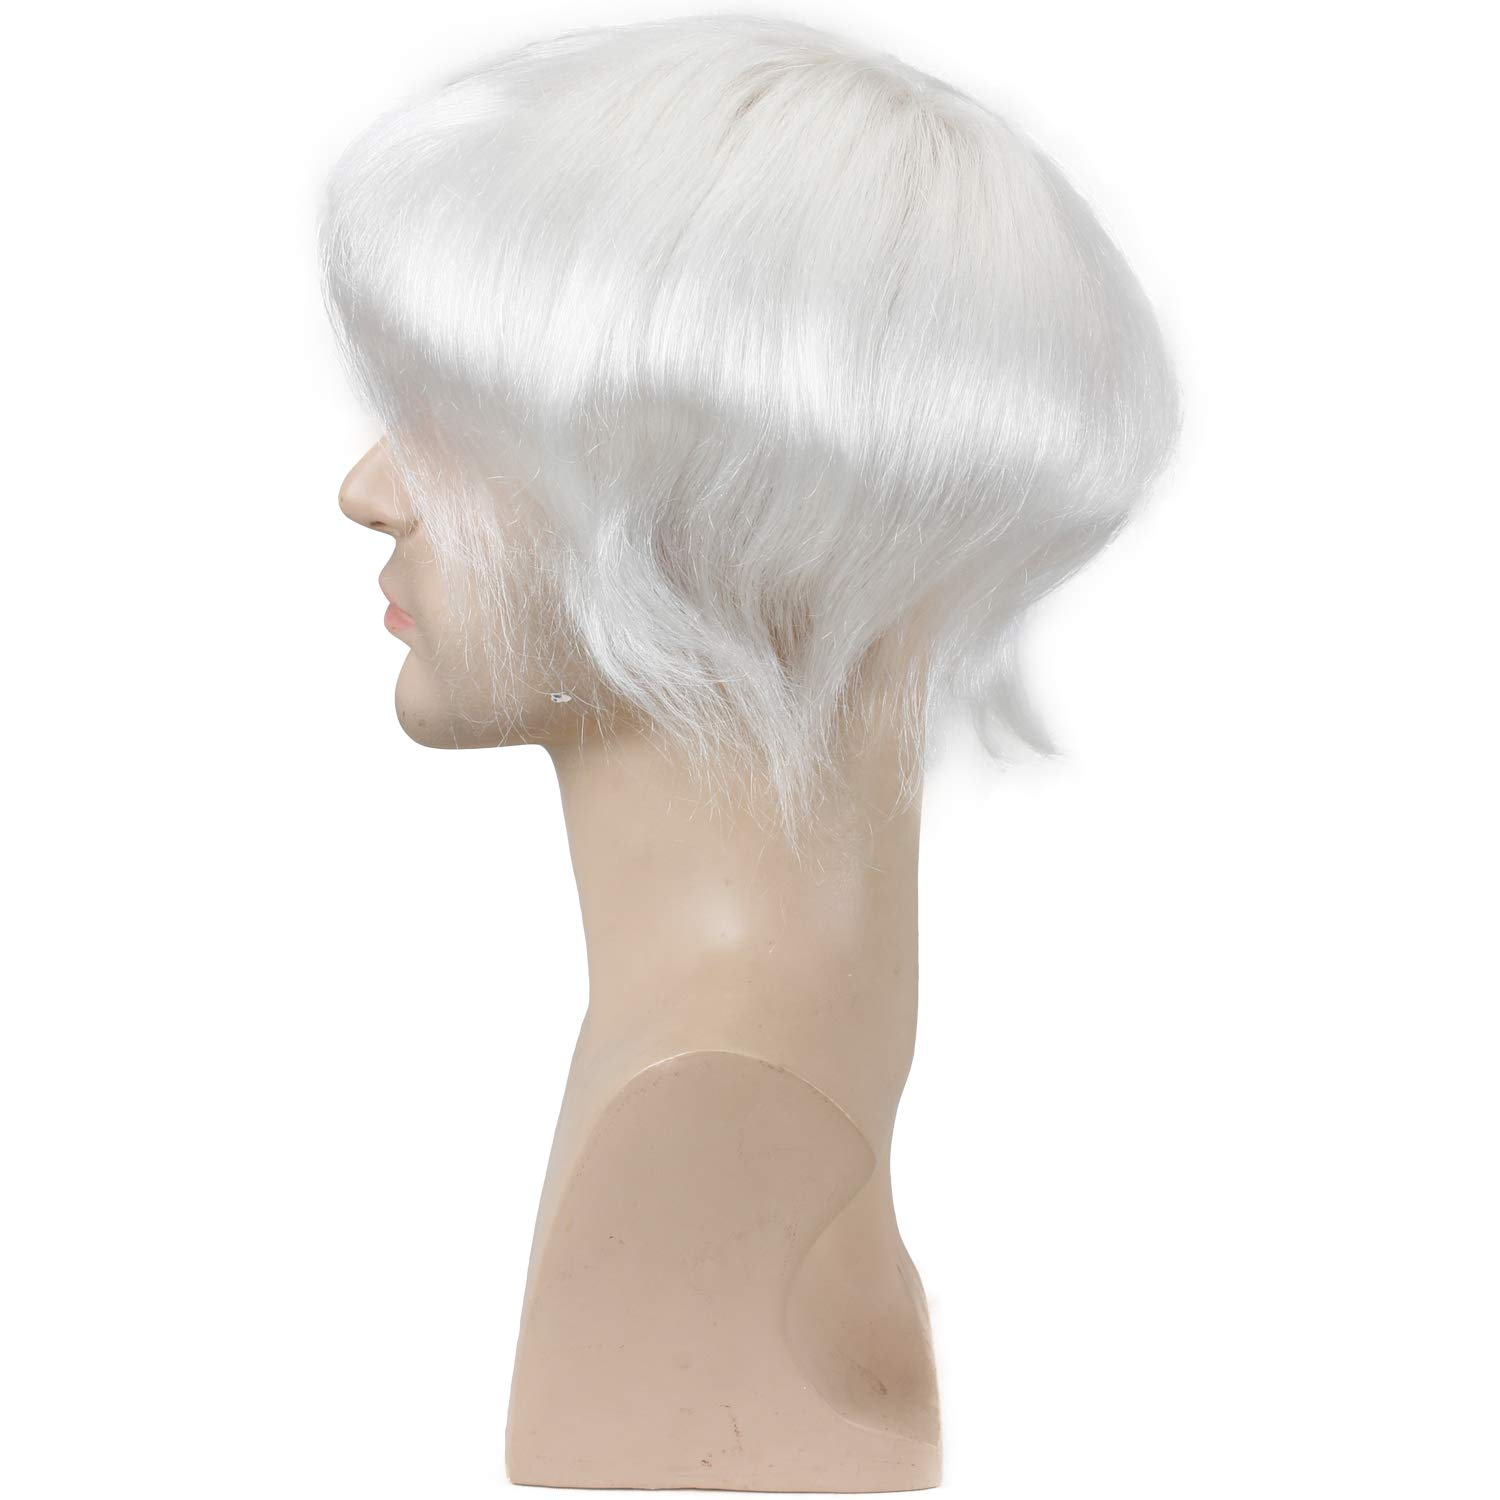 Eseewigs Durable Breathable french Lace Men's Toupee European Real Human Hair Replacement for Men Hairpiece White Color